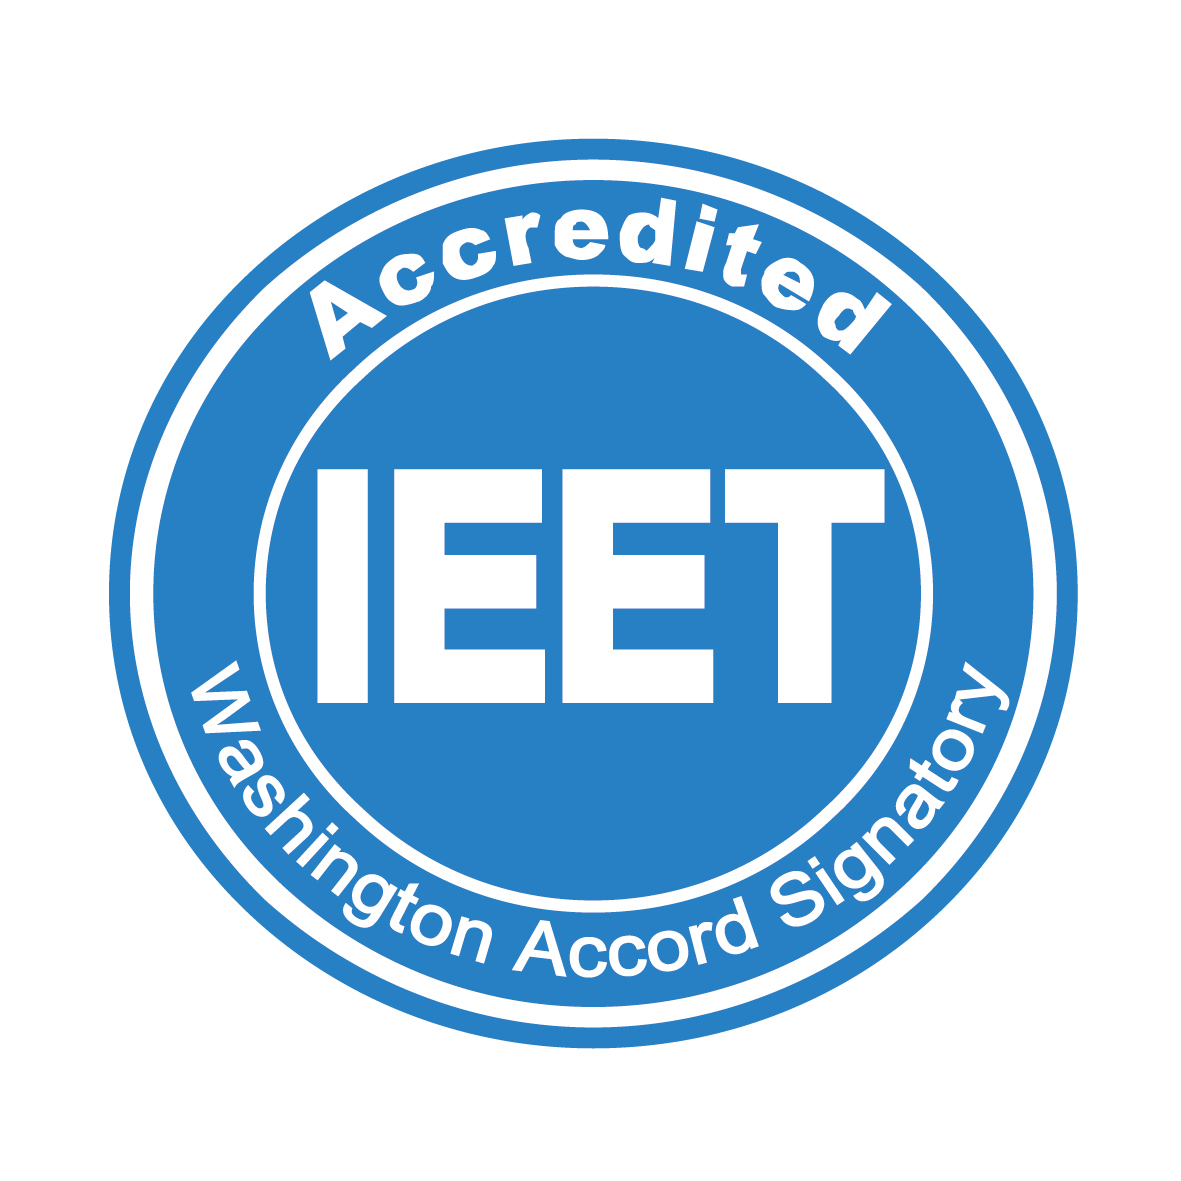 IEET_Accredited-Logo_EAC